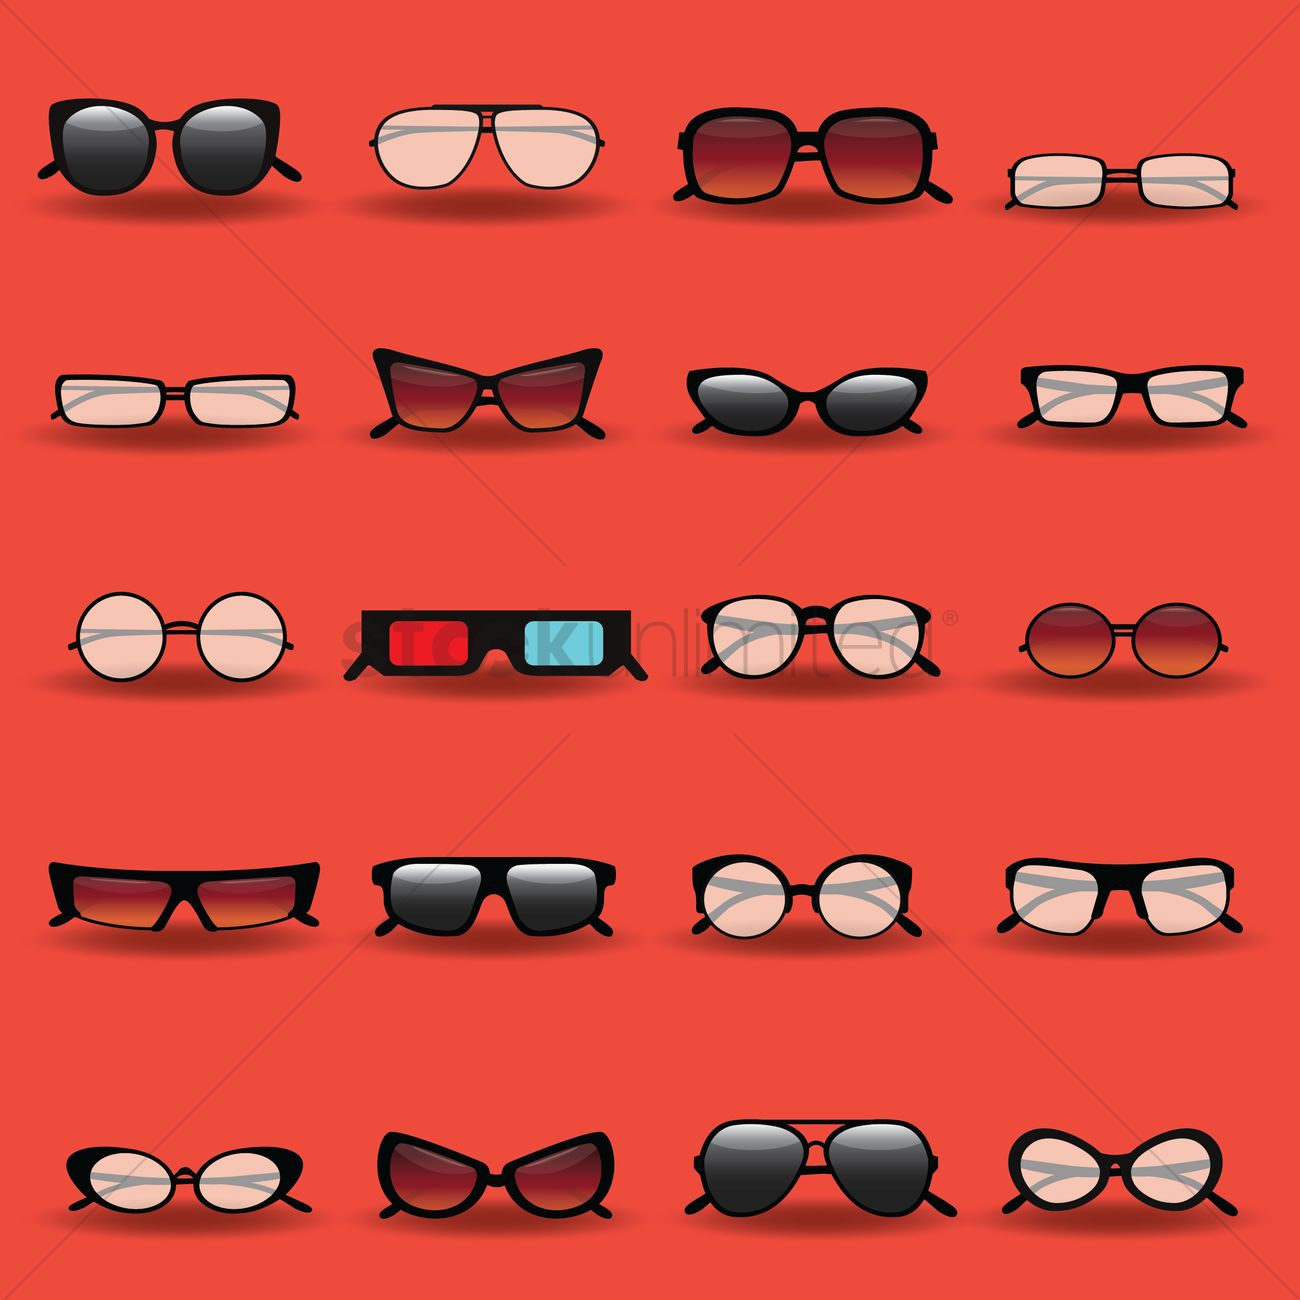 58bd59ad33b Collection of glasses Vector Image - 1504504